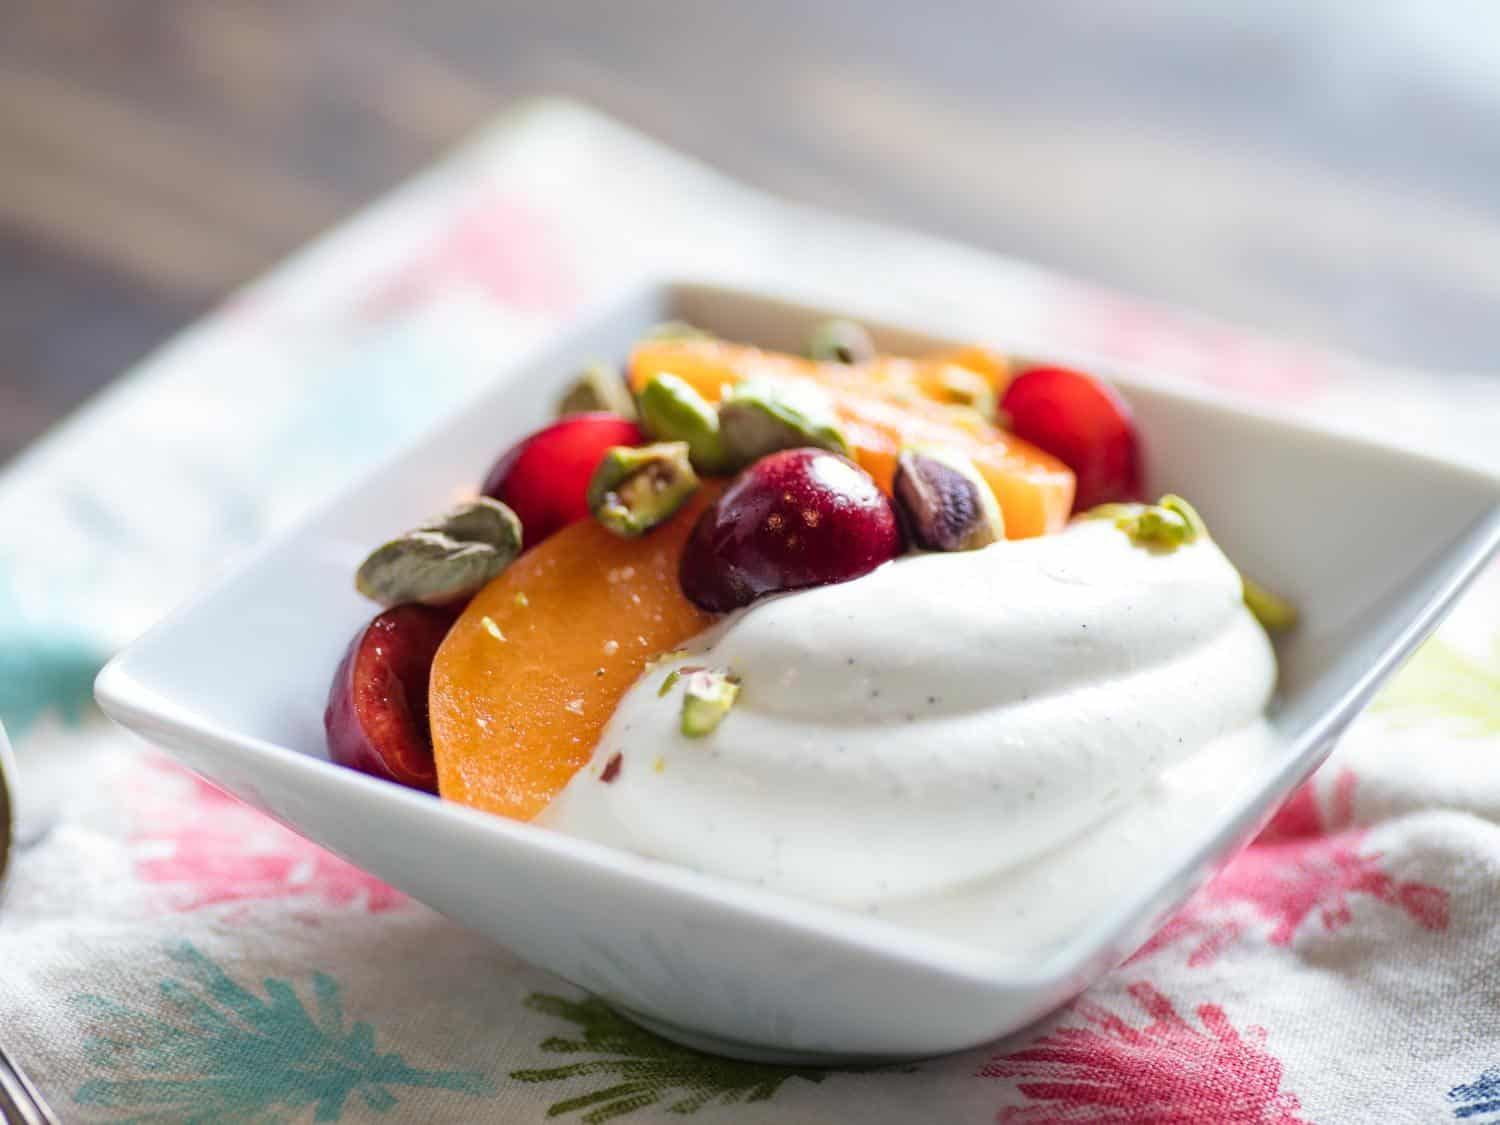 Creamy whipped greek yogurt with fruits and nuts